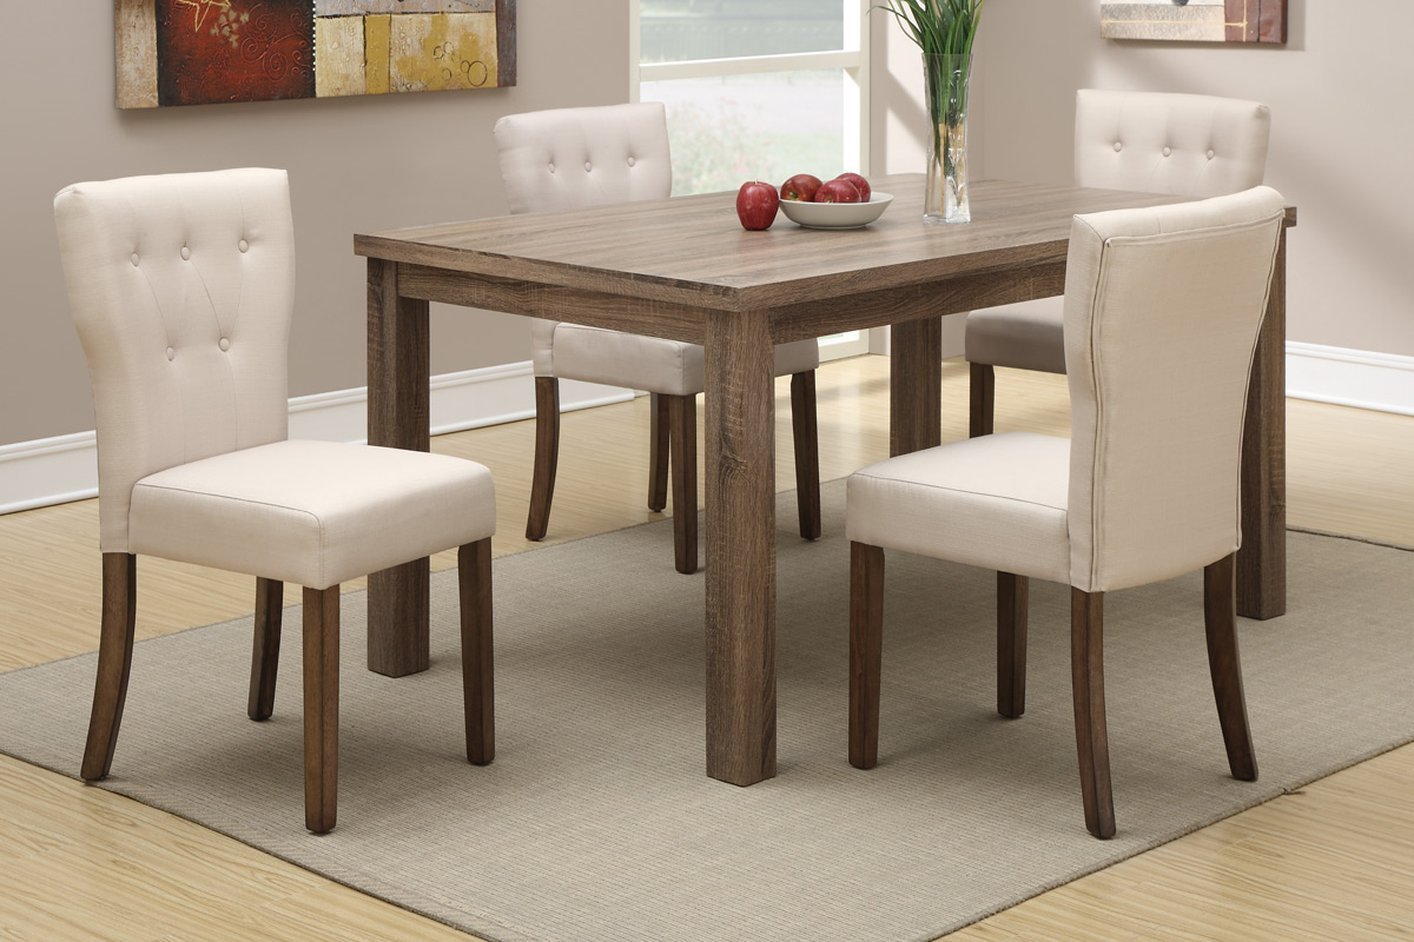 Beige Fabric Dining Chair - Steal-A-Sofa Furniture Outlet Los ...